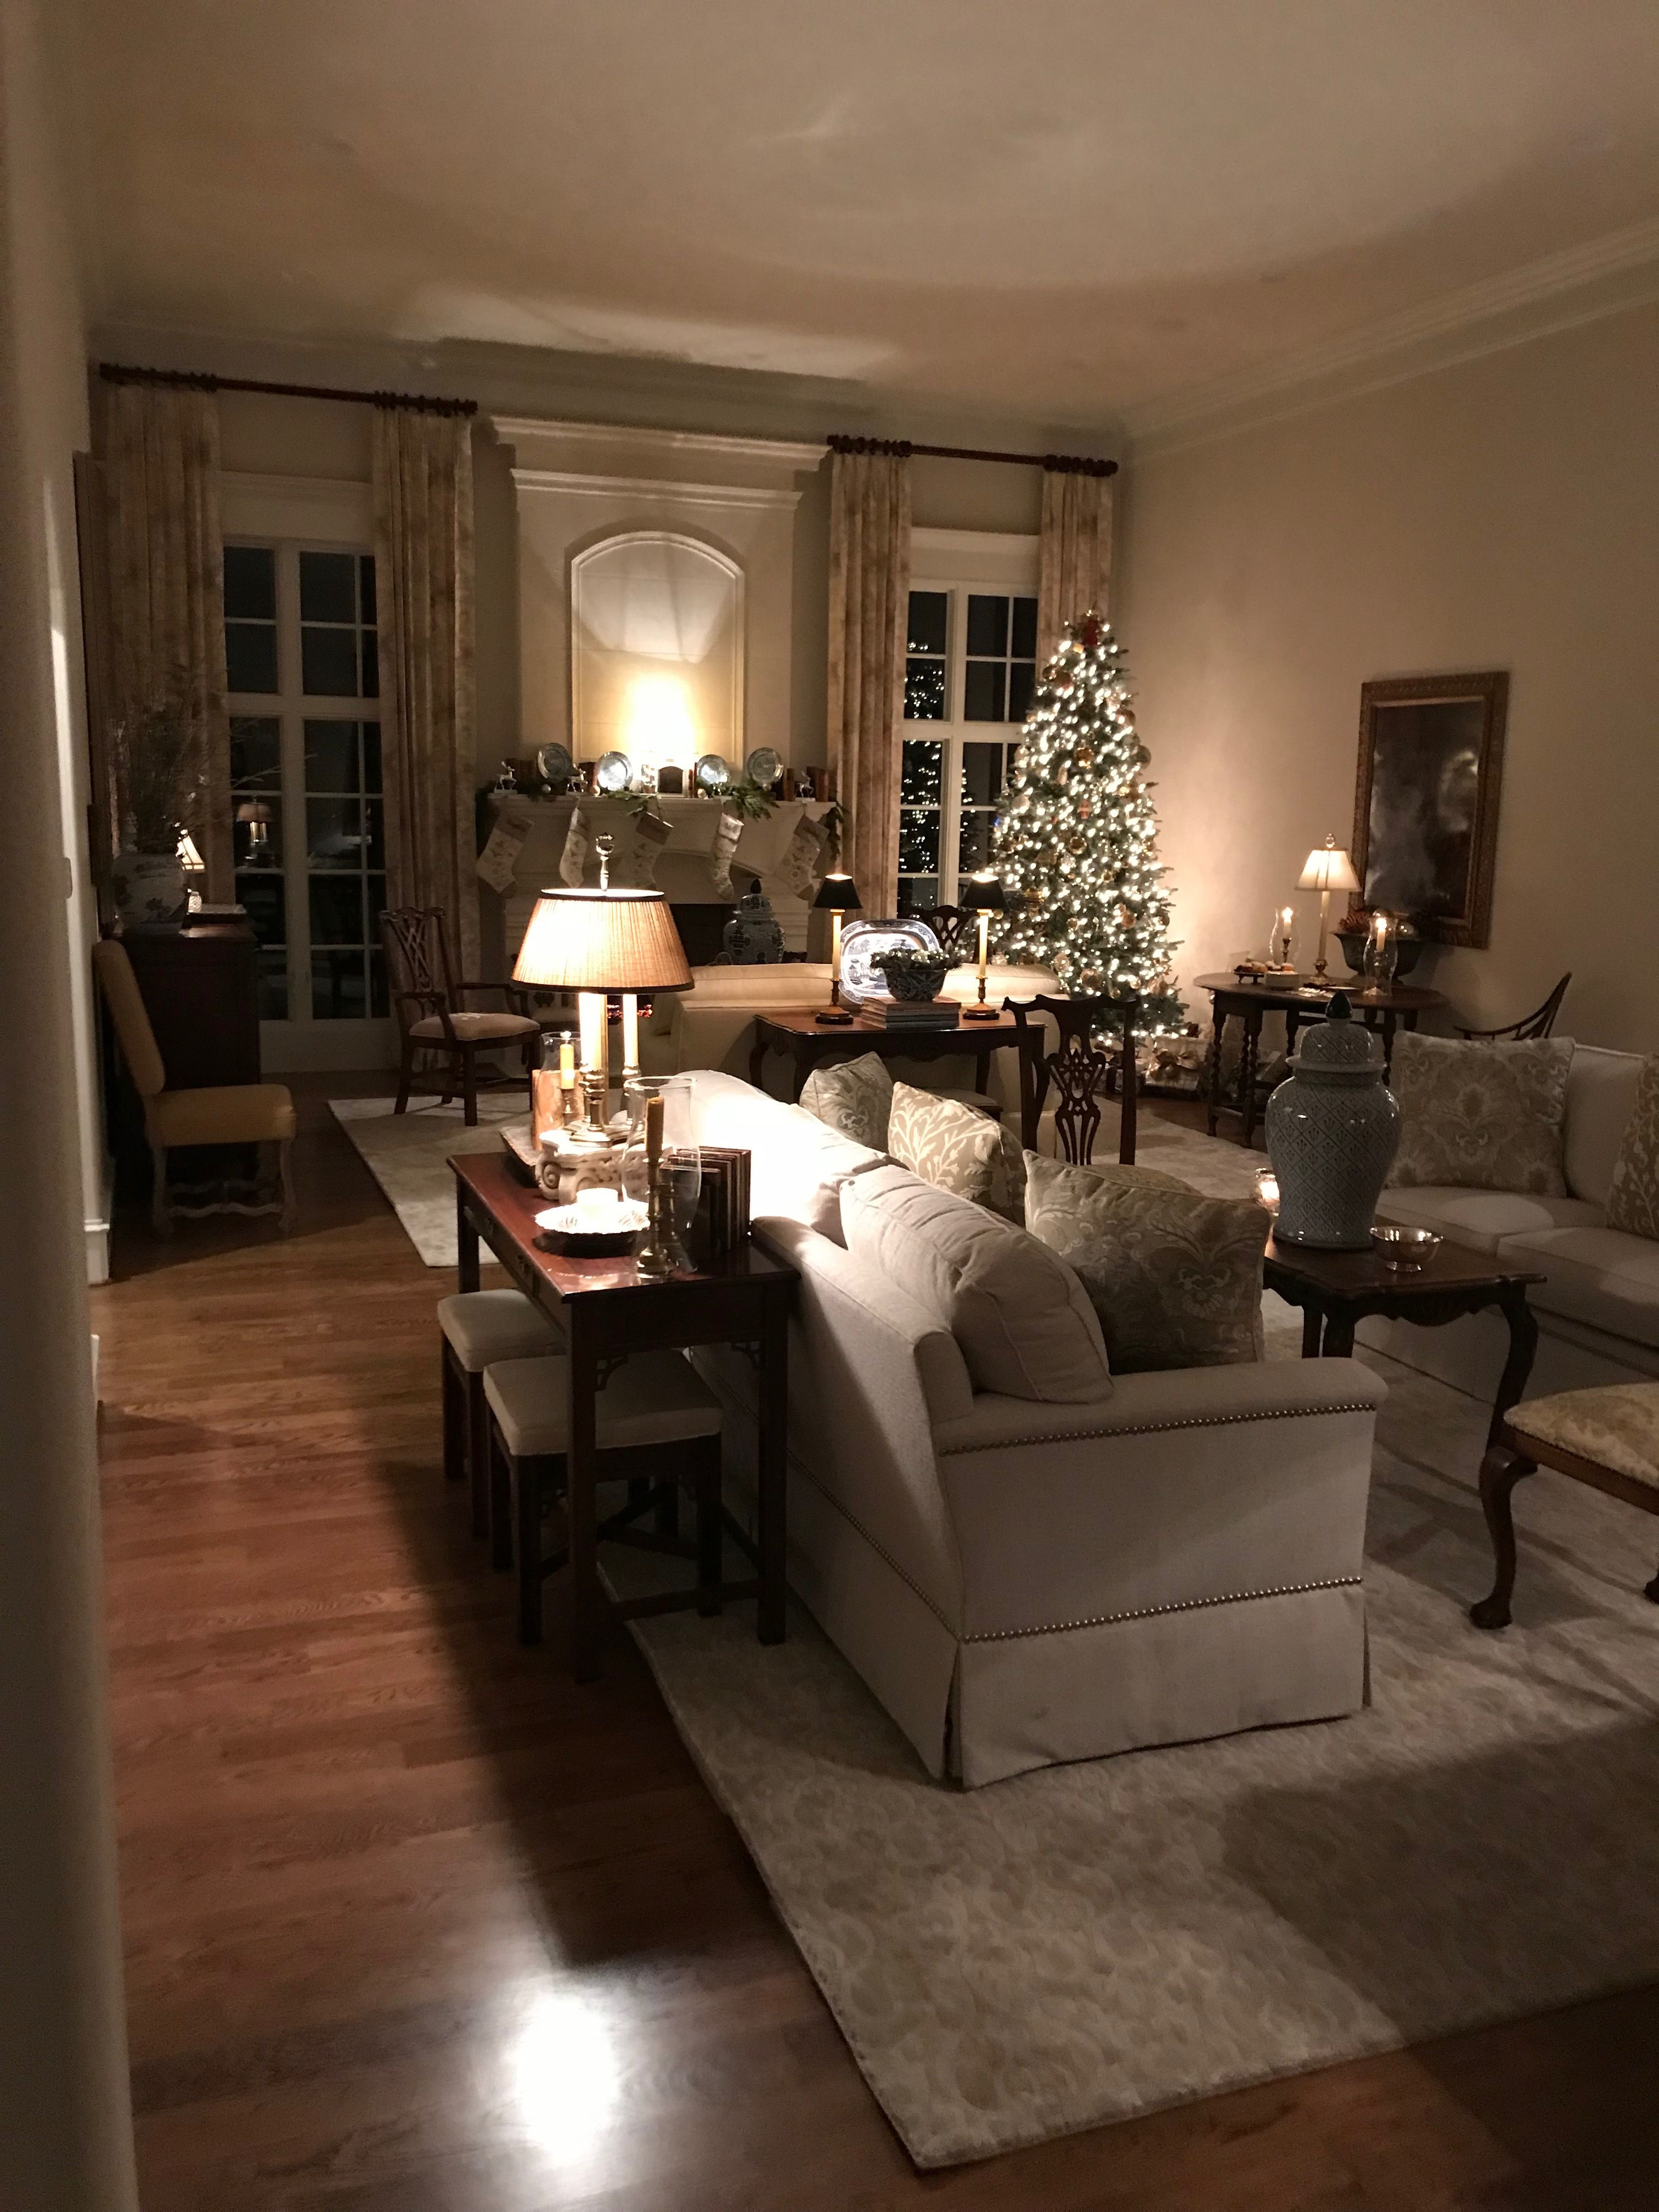 Living Room Night Decor And Please Those Windows Facing The Entrance And Road Farm House Living Room Rustic Living Room Elegant Living Room